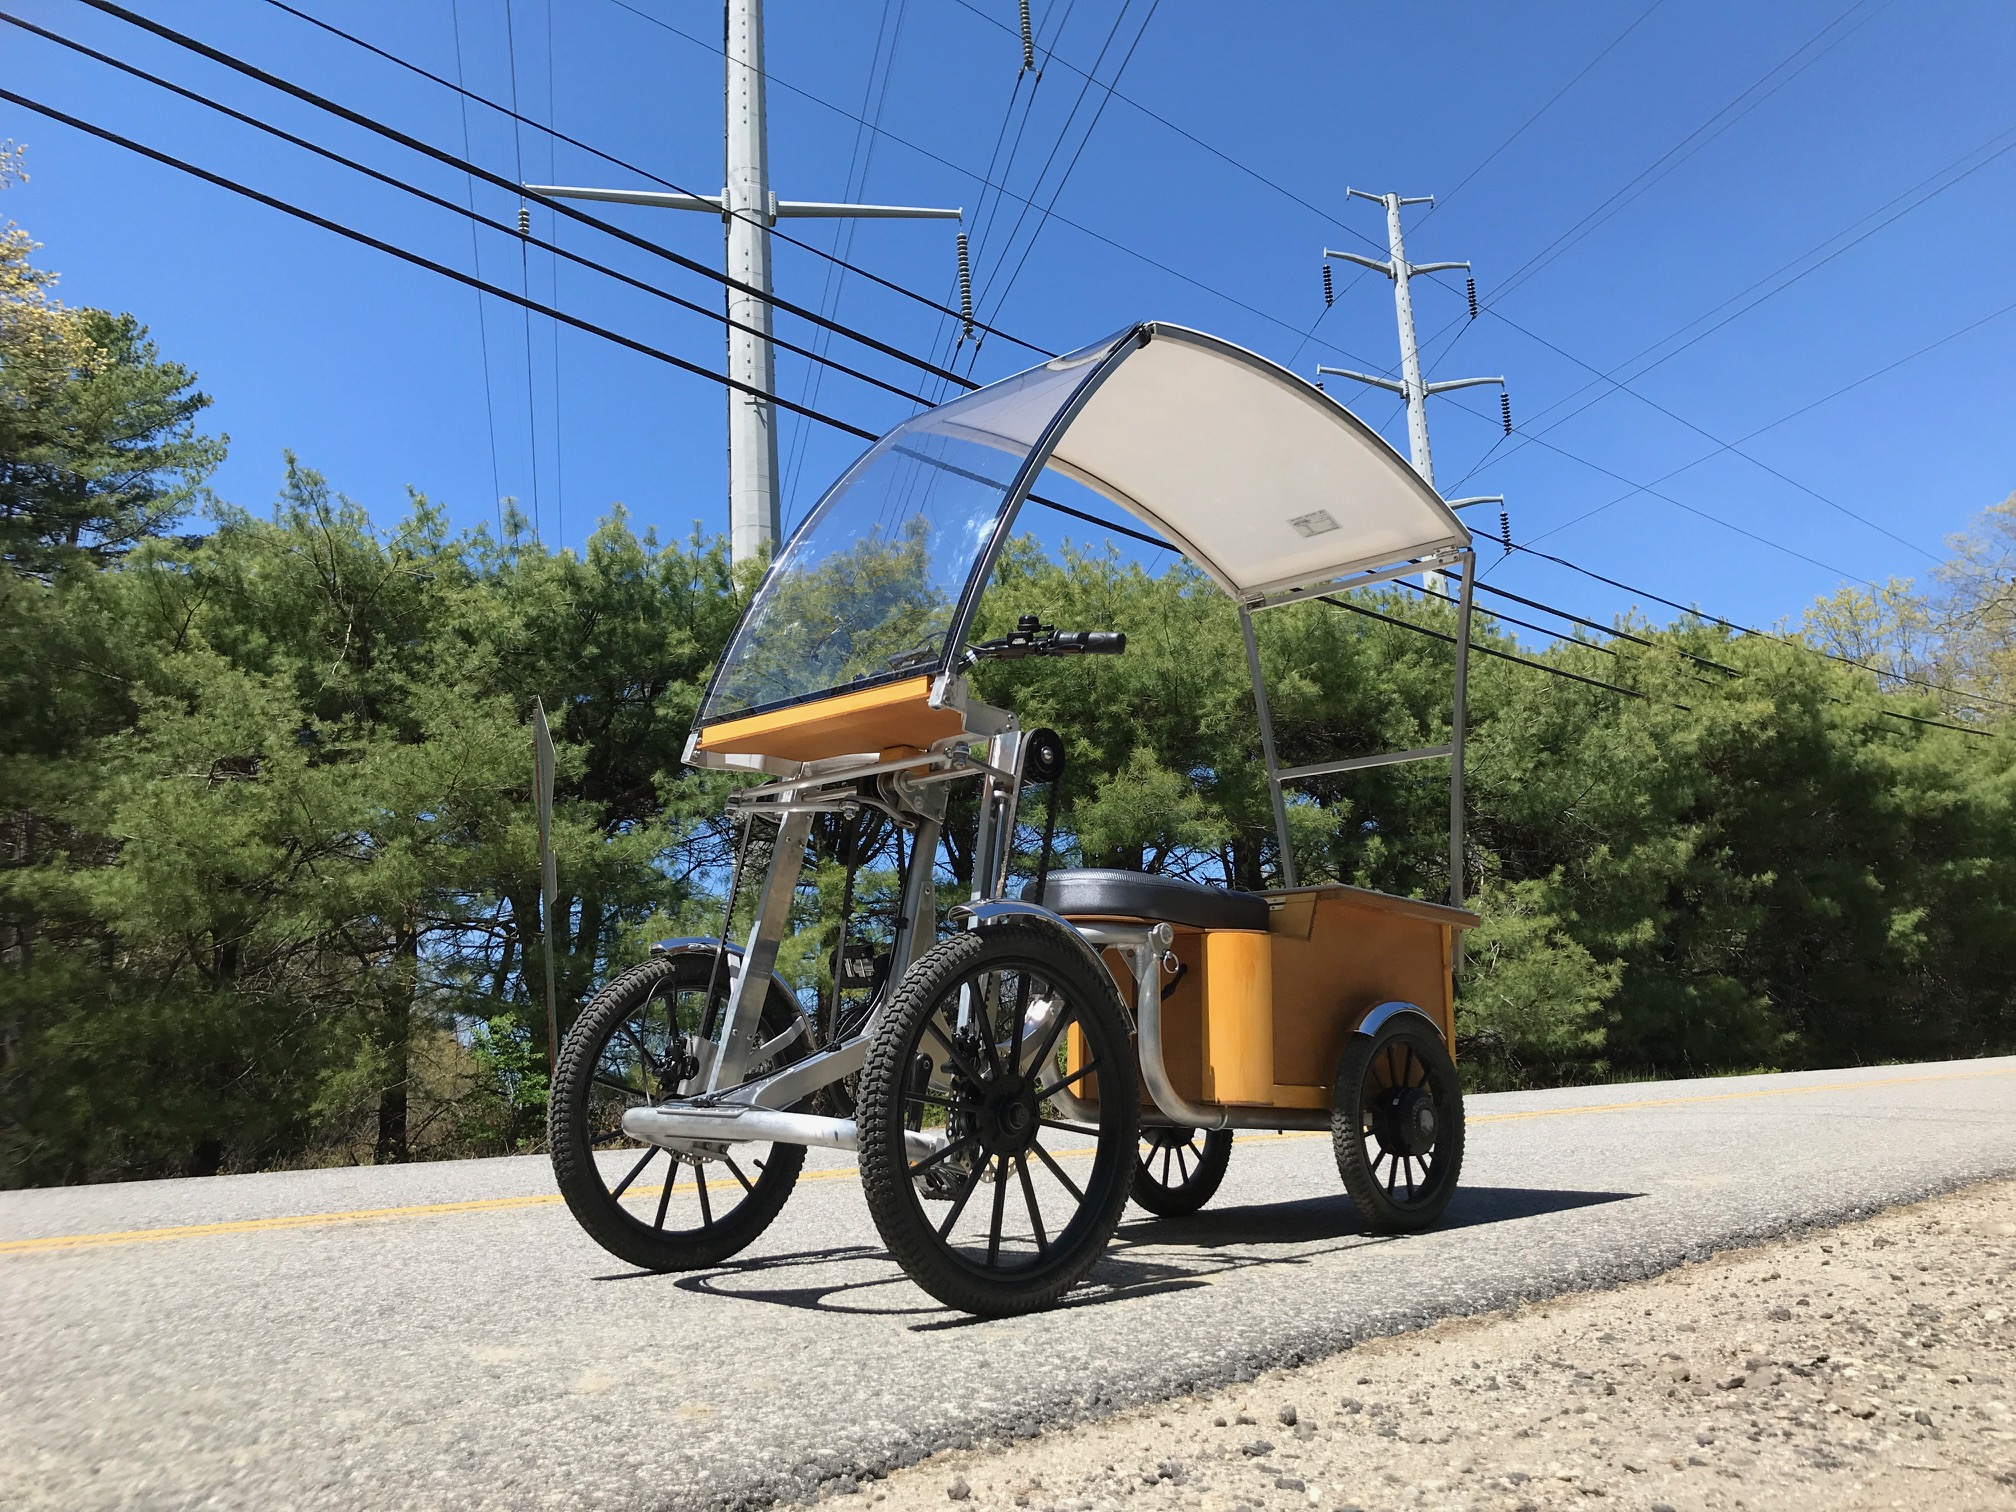 The Screecher four-wheeler features two 350-W rear hub electric motors and a removable Li-ion battery pack that can be charged by the solar panel canopy or via the included AC charger